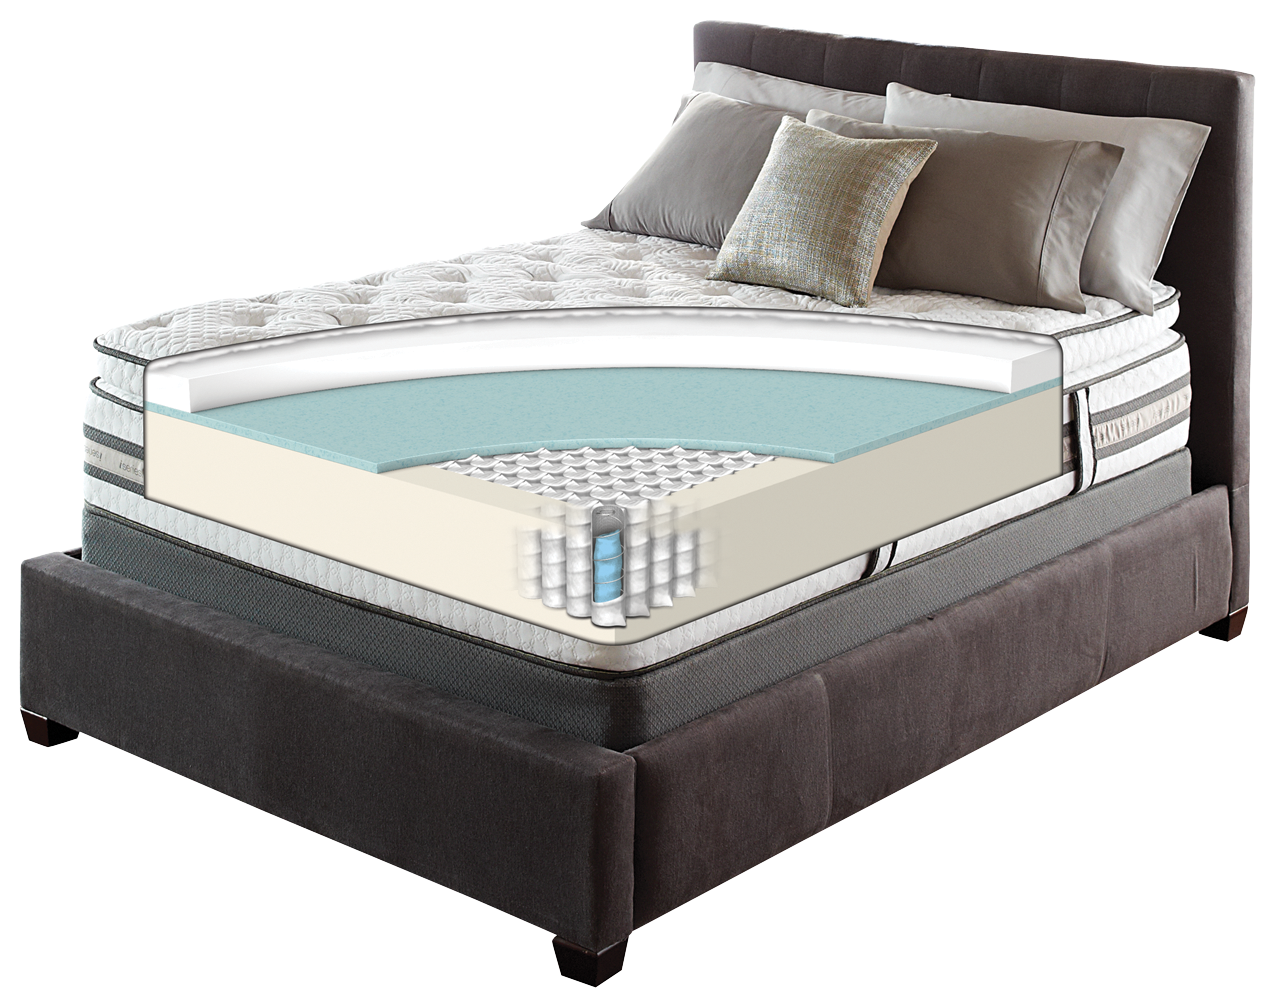 iseries merit mattress by serta features all the benefits of the